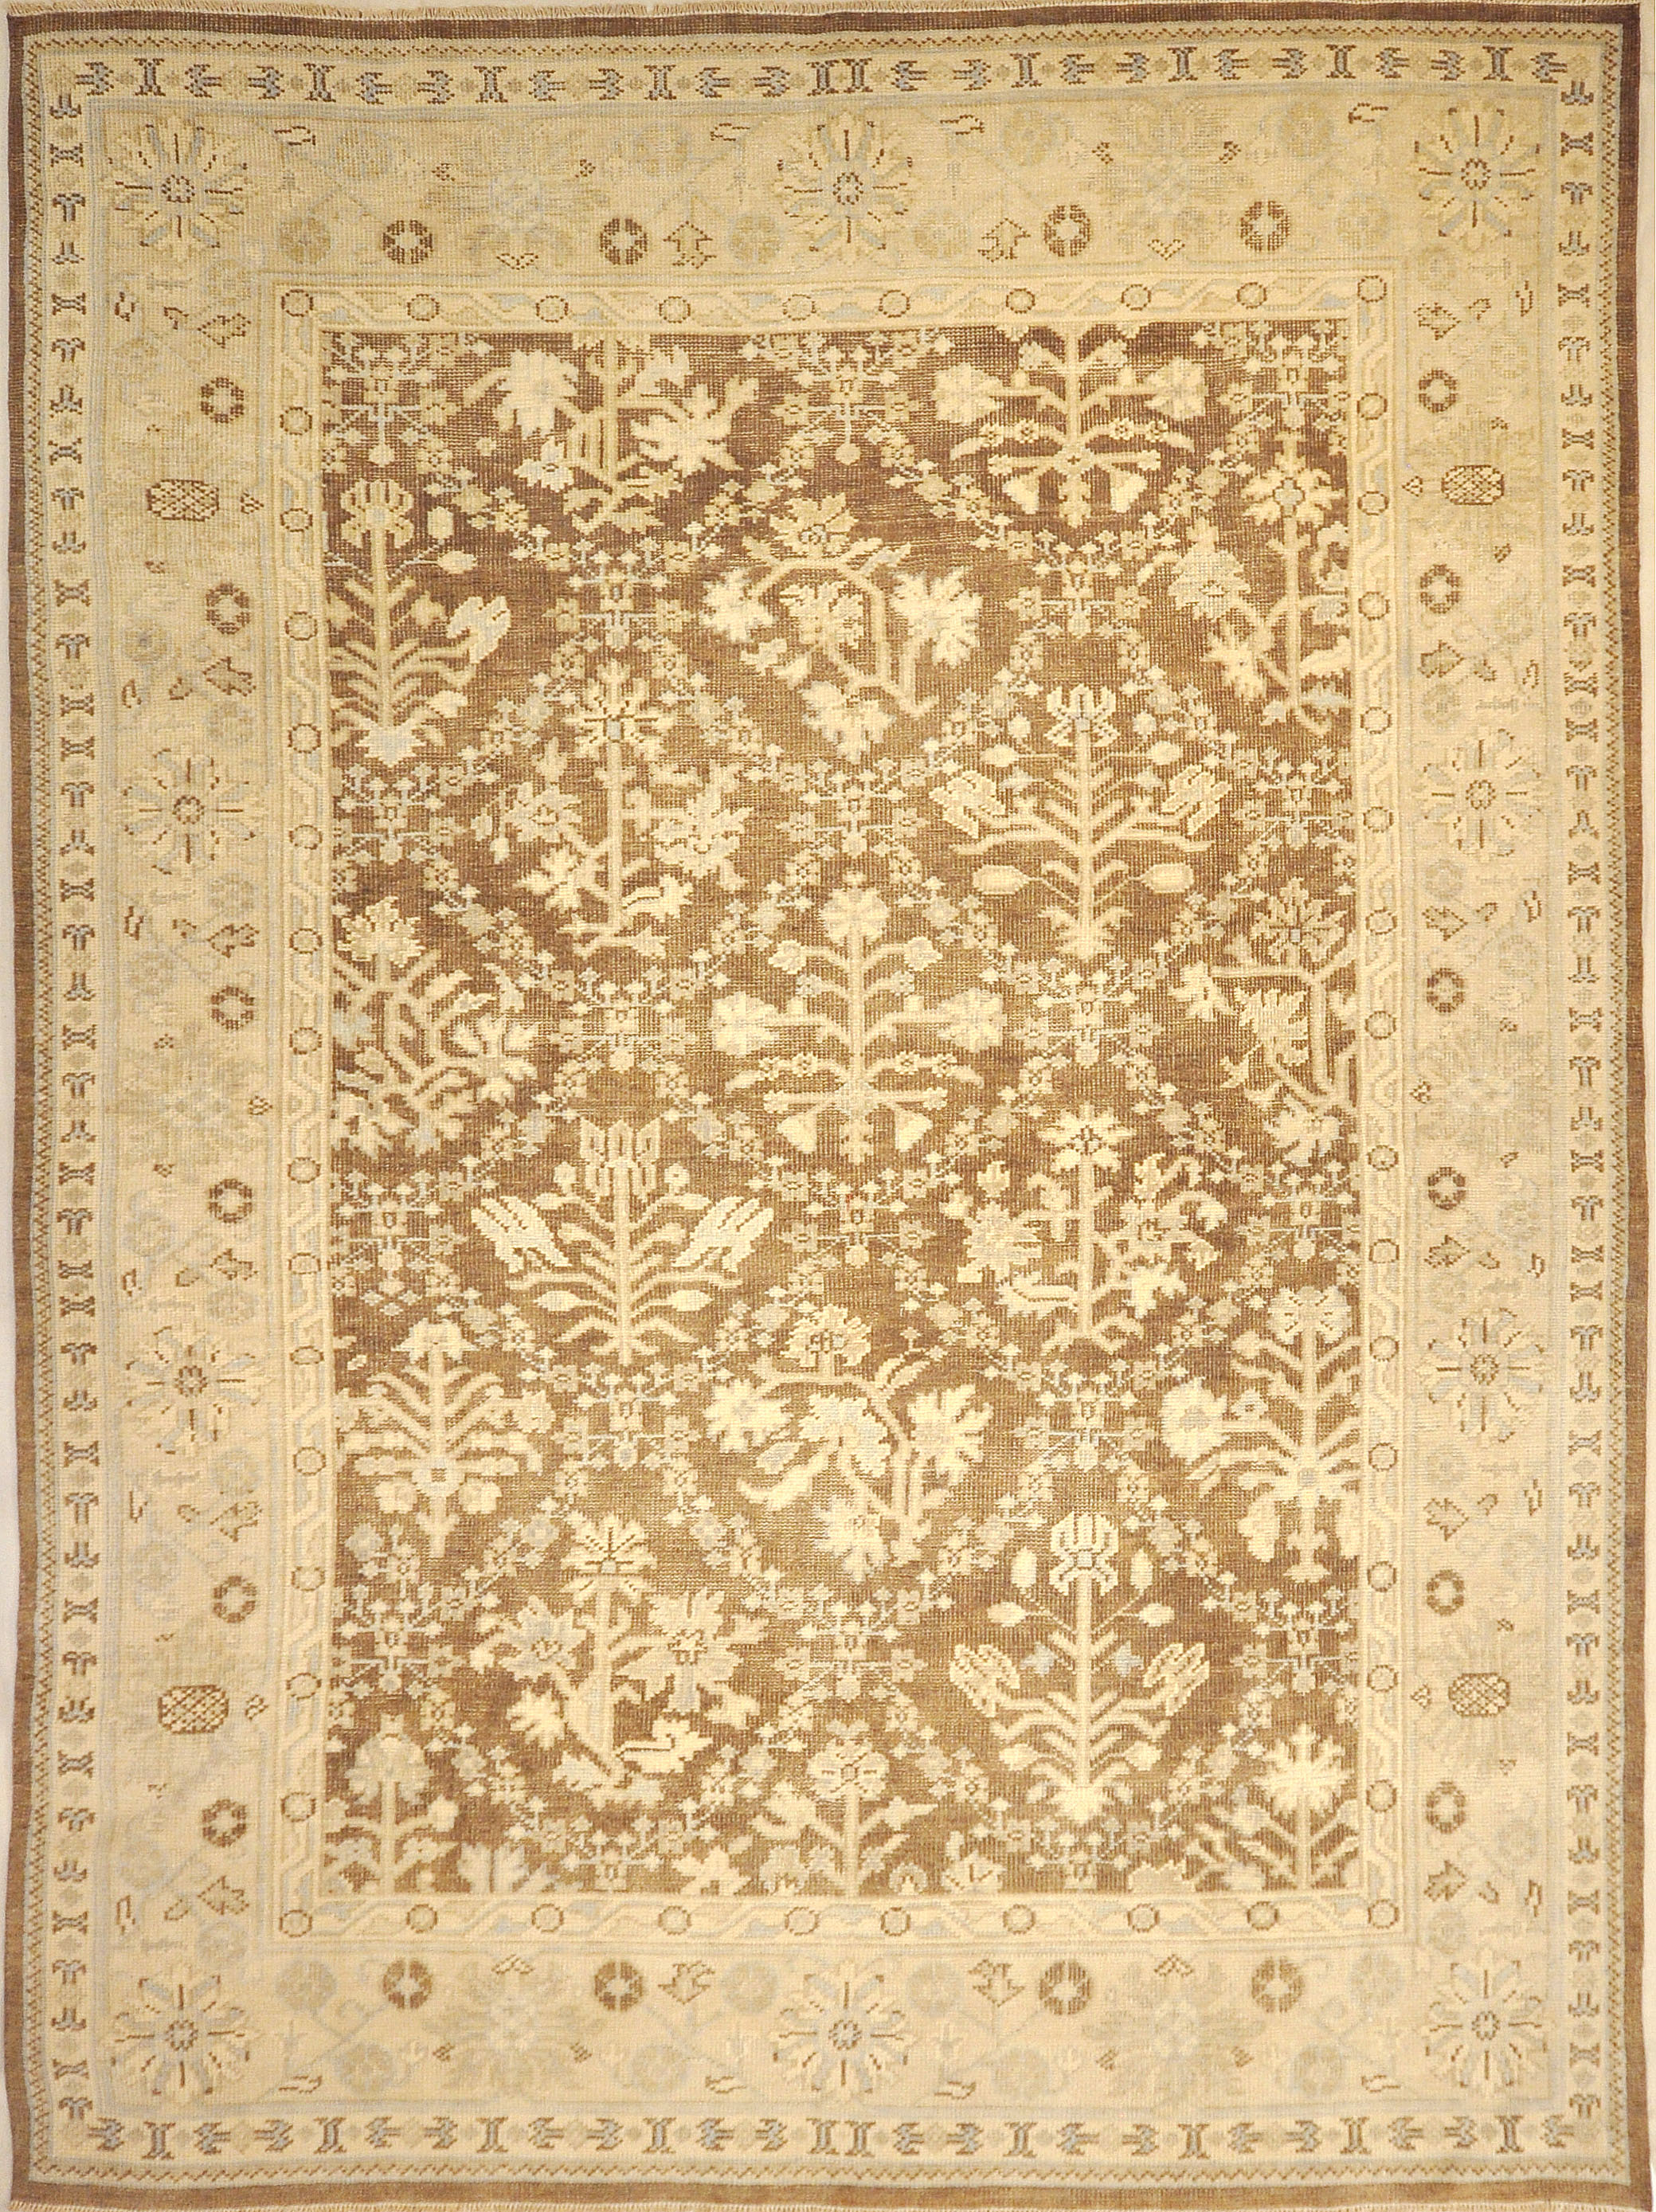 Montecito Oushak Rug 30310. A piece of genuine authentic woven art woven by Ziegler and Company and sold by Santa Barbara Design Center, Rugs and More.